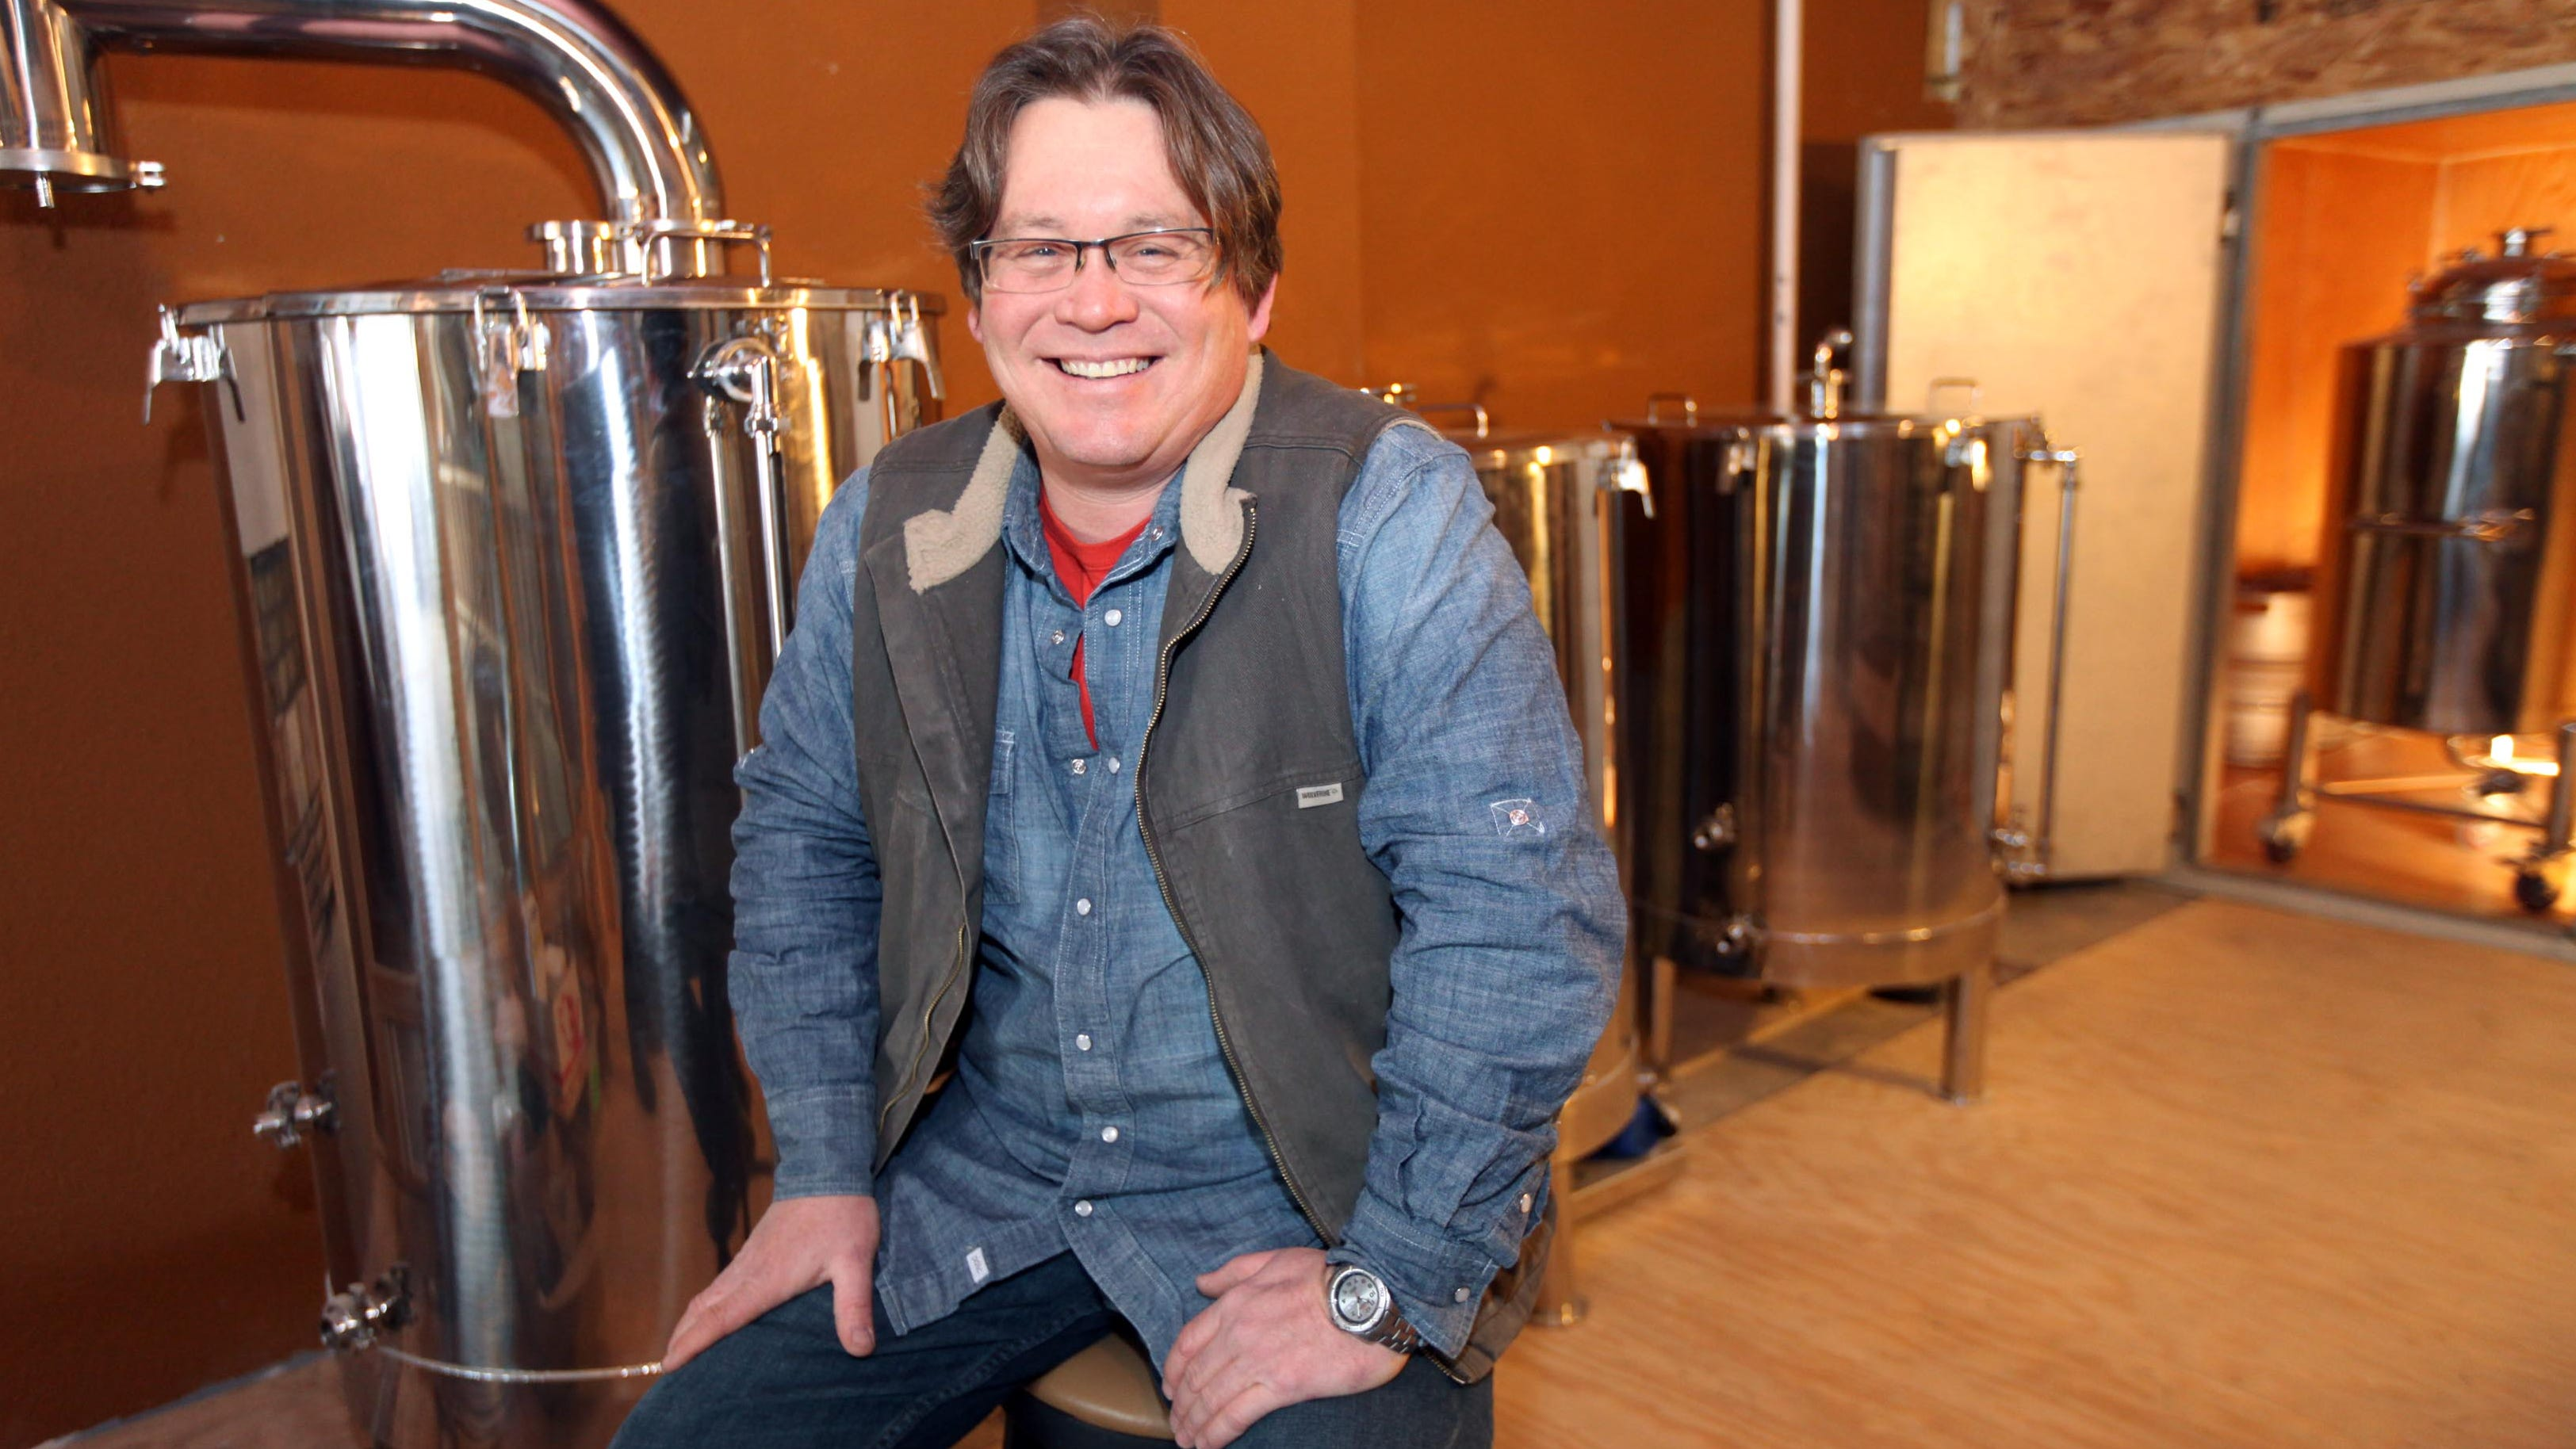 Bay View's D14 Brewery will close its doors, after it celebrates its fourth anniversary